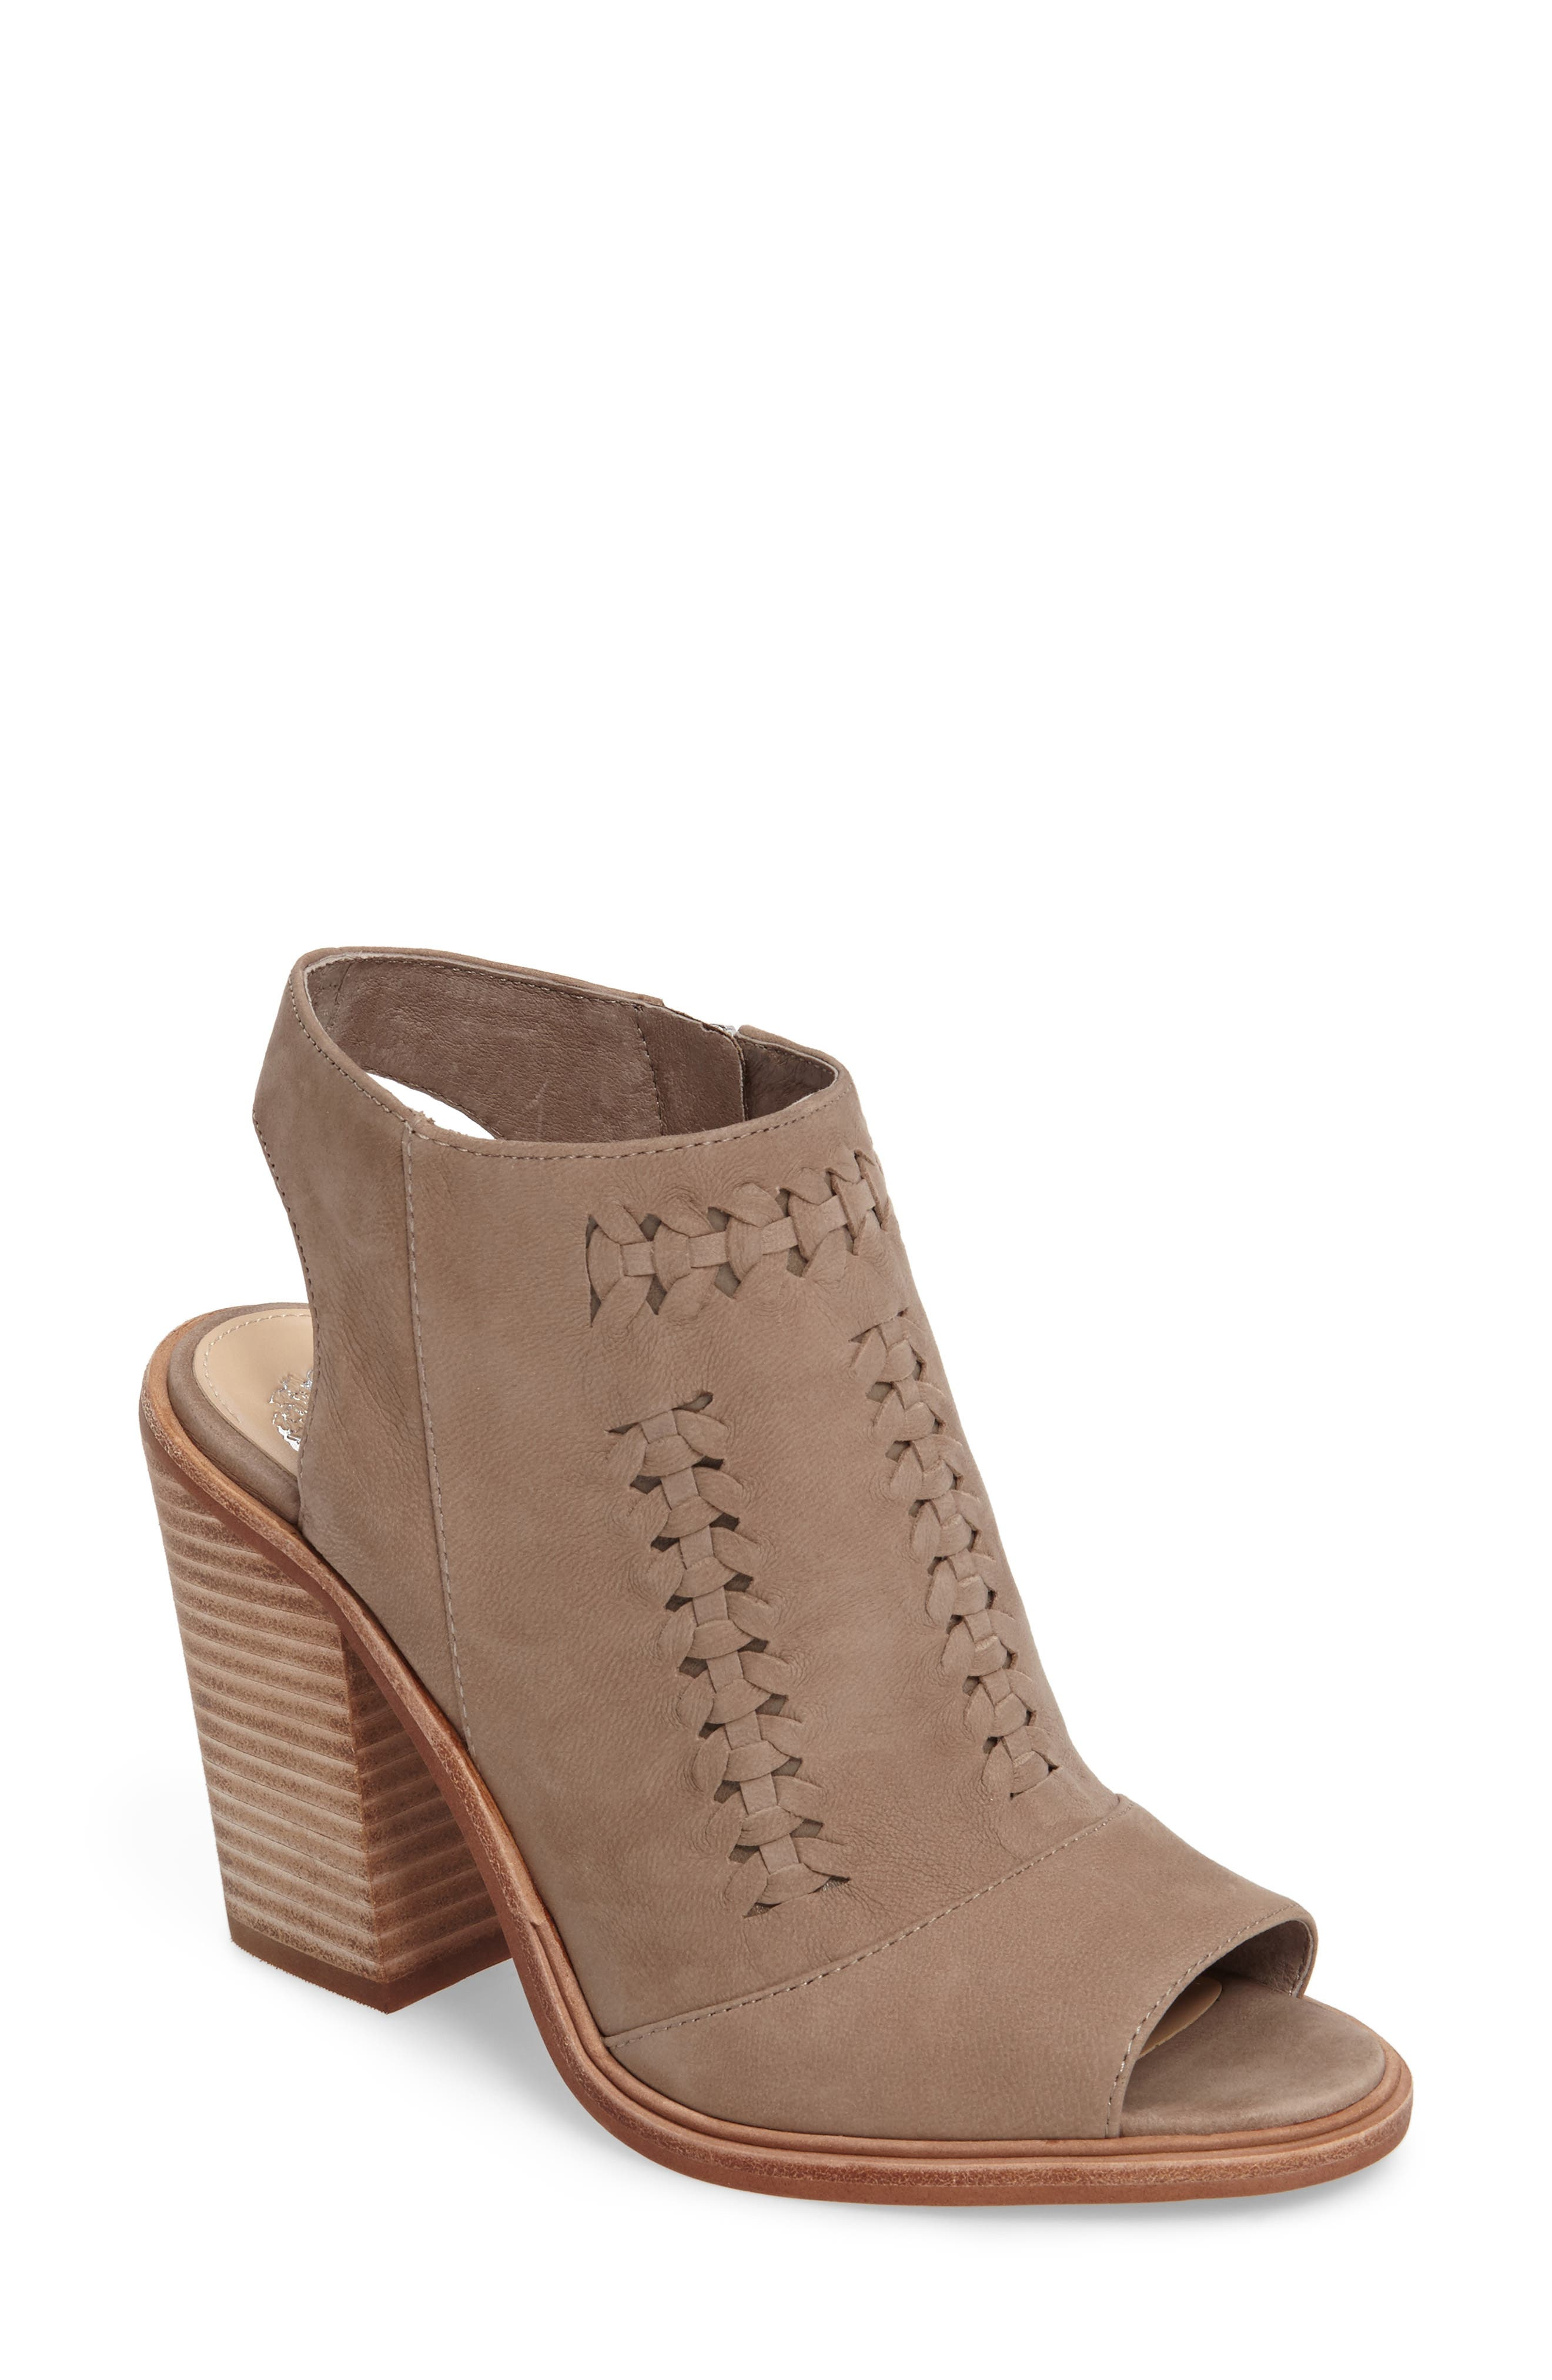 Main Image - Vince Camuto Katri Woven Bootie (Women) (Nordstrom Exclusive)